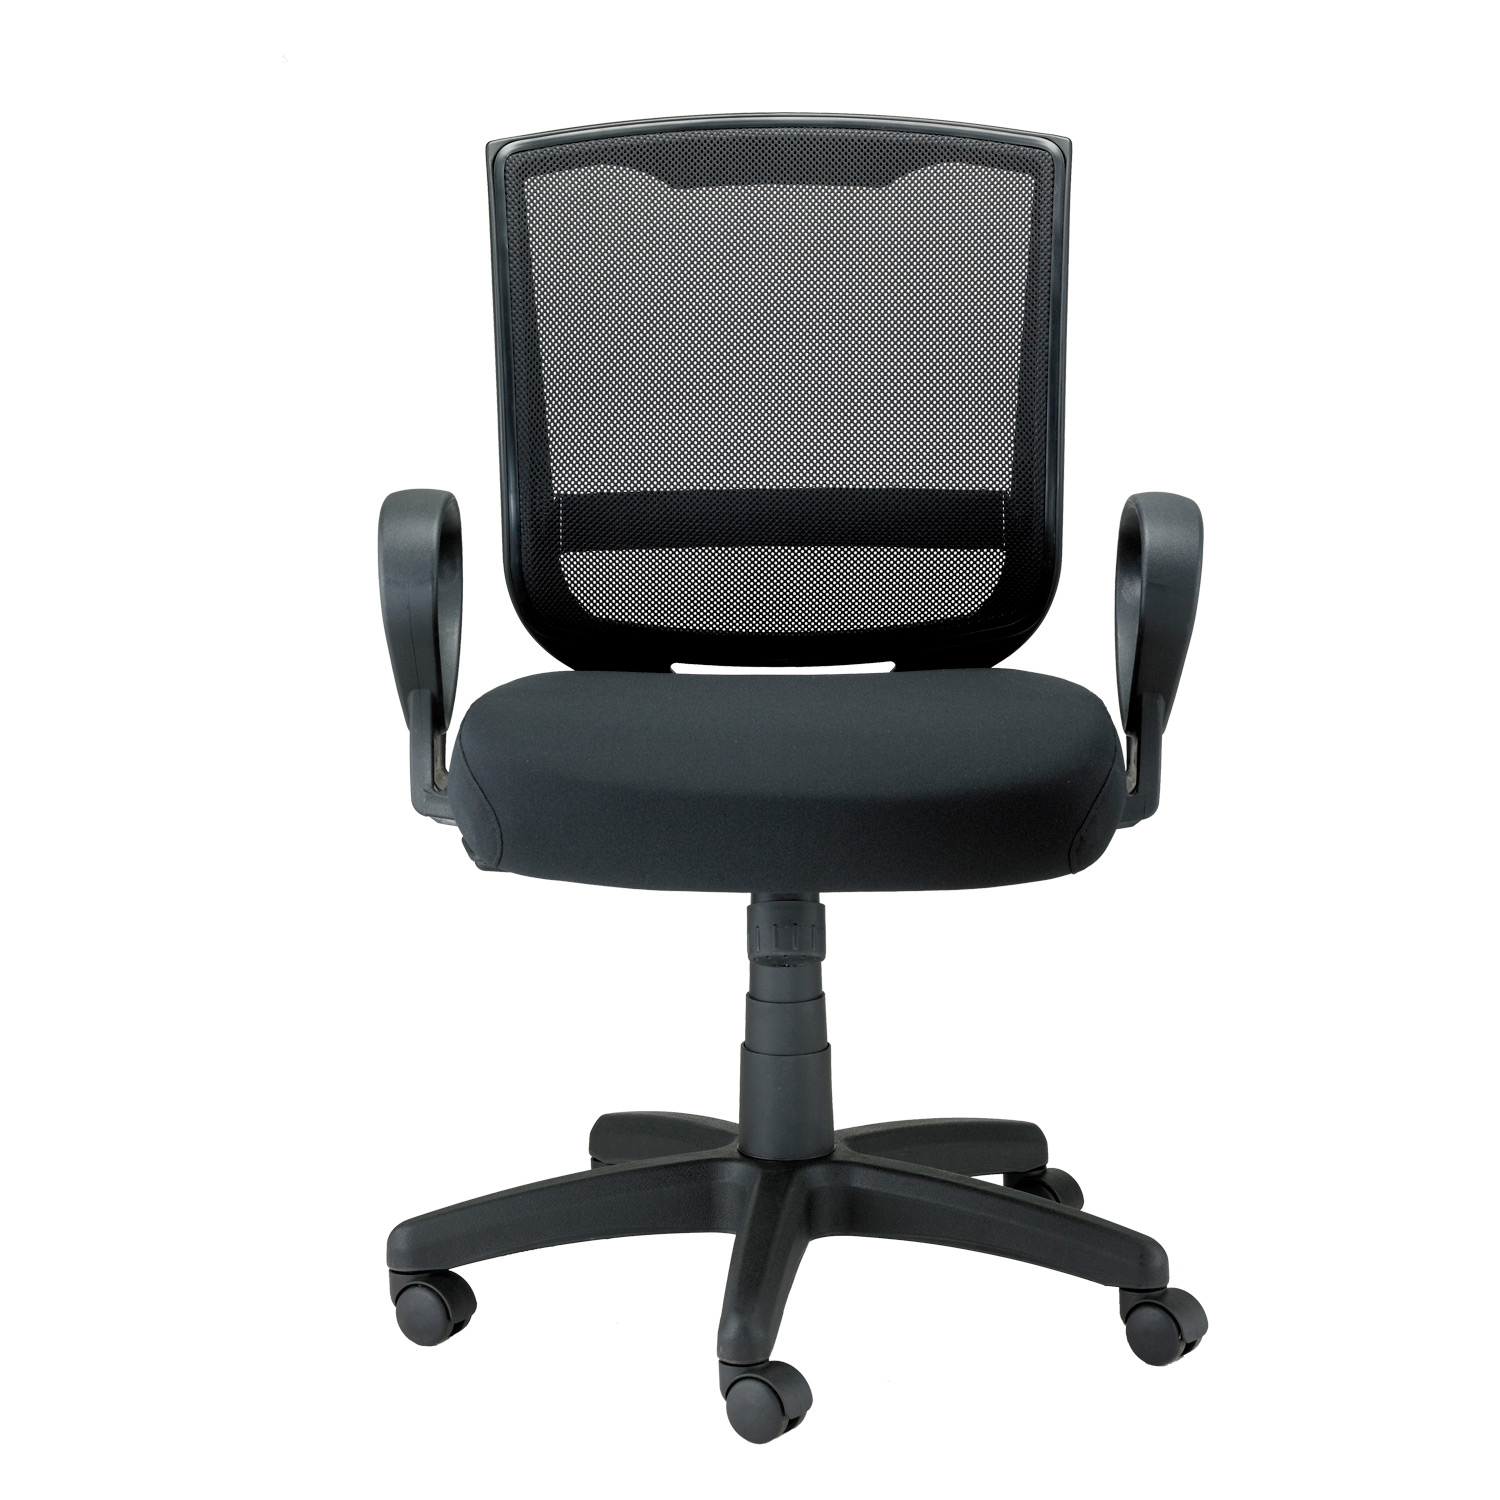 Mesh Chairs Discount Chairs fice Furniture Chairs